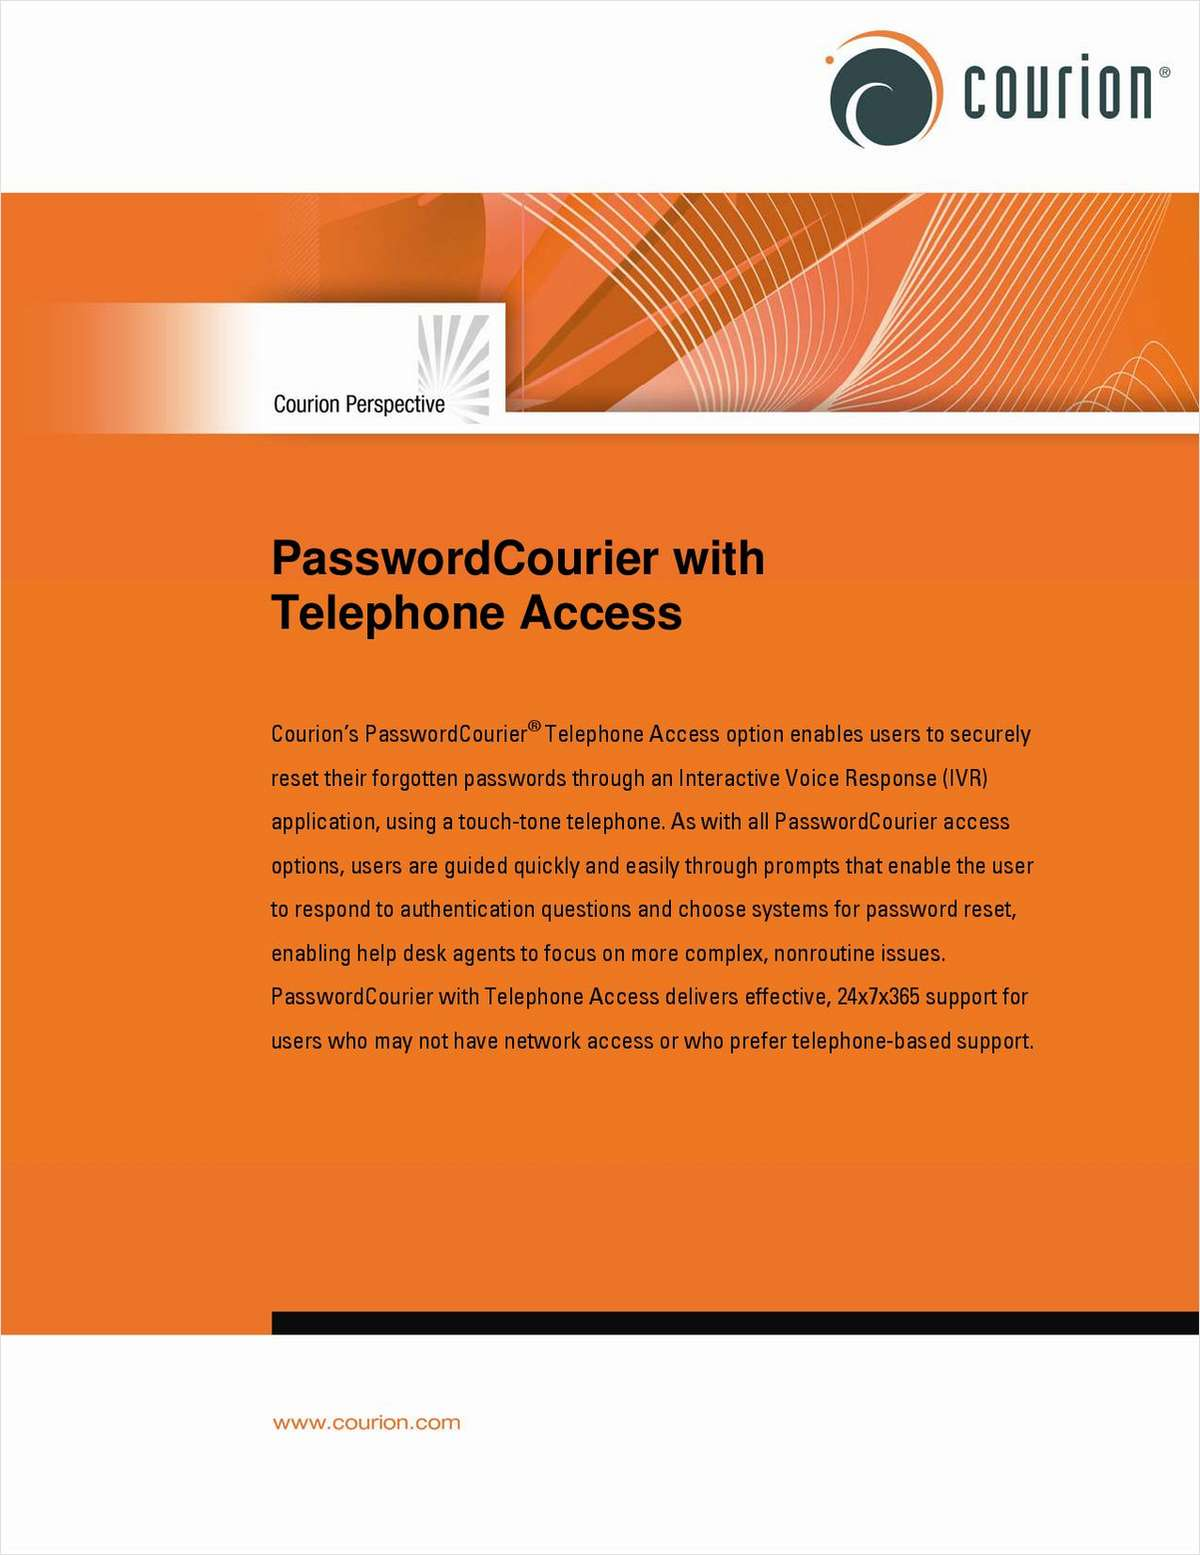 PasswordCourier with Telephone Access